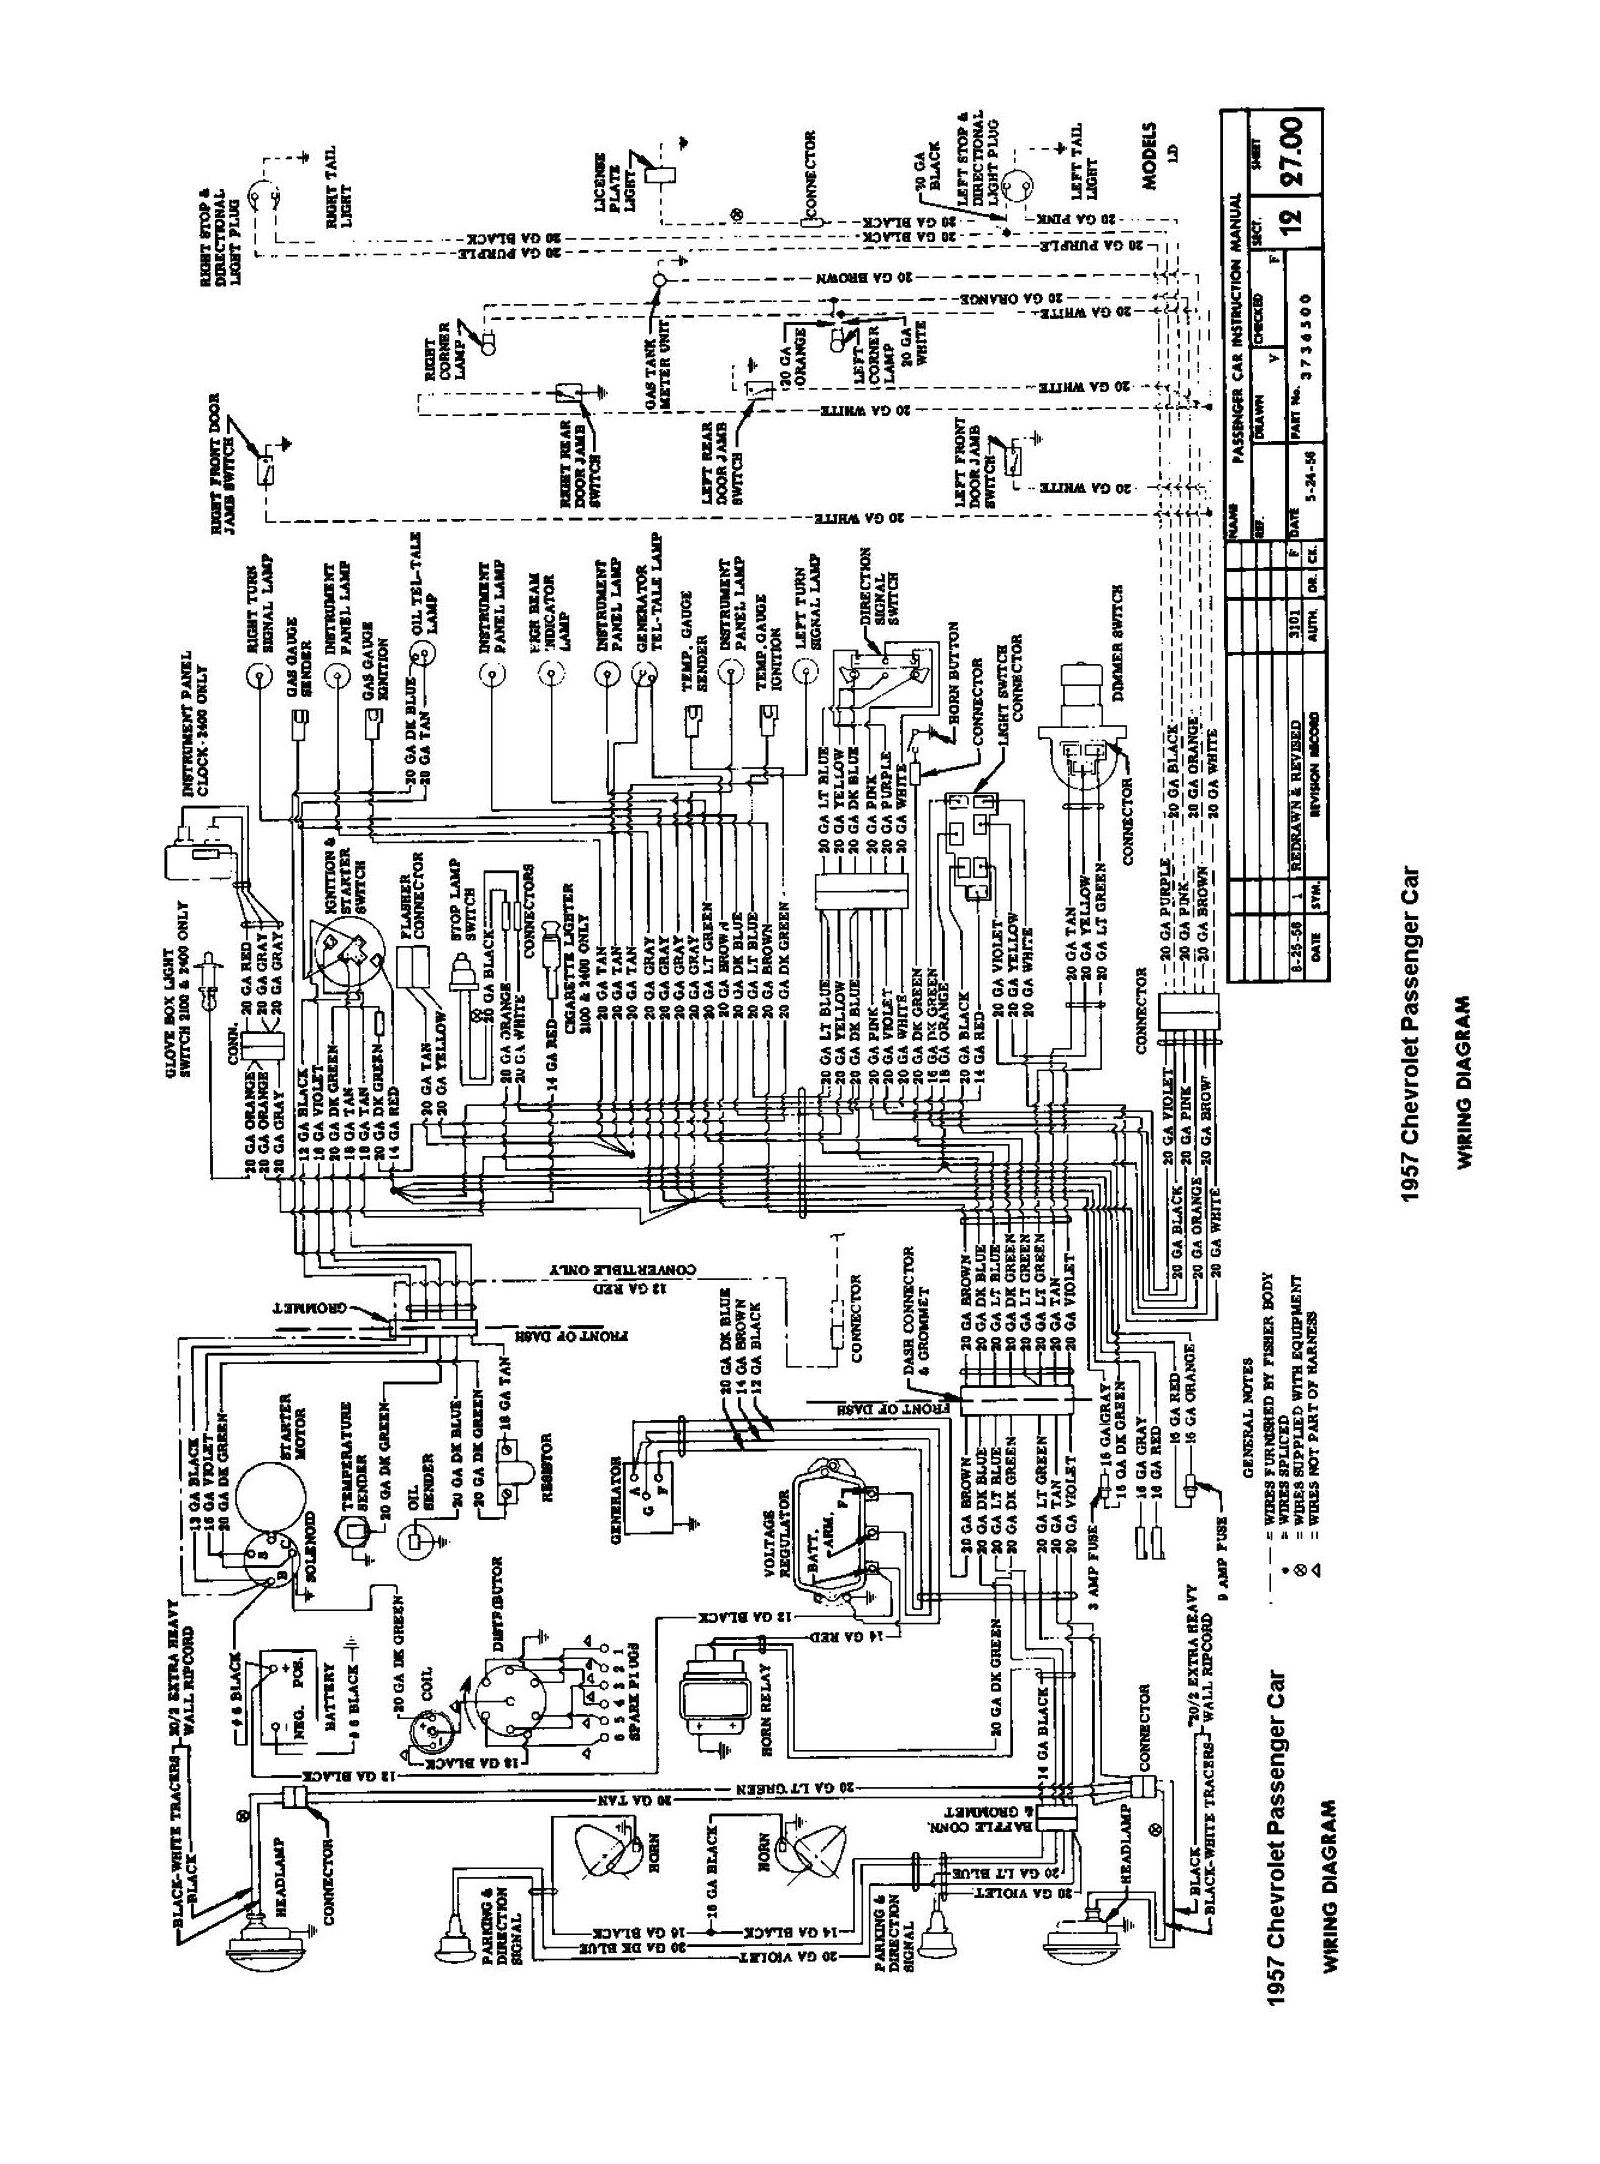 Chevy wiring schematics on chevy wiring diagrams Chevy AC Wiring Schematics 1959 Chevy Truck Wiring Diagram